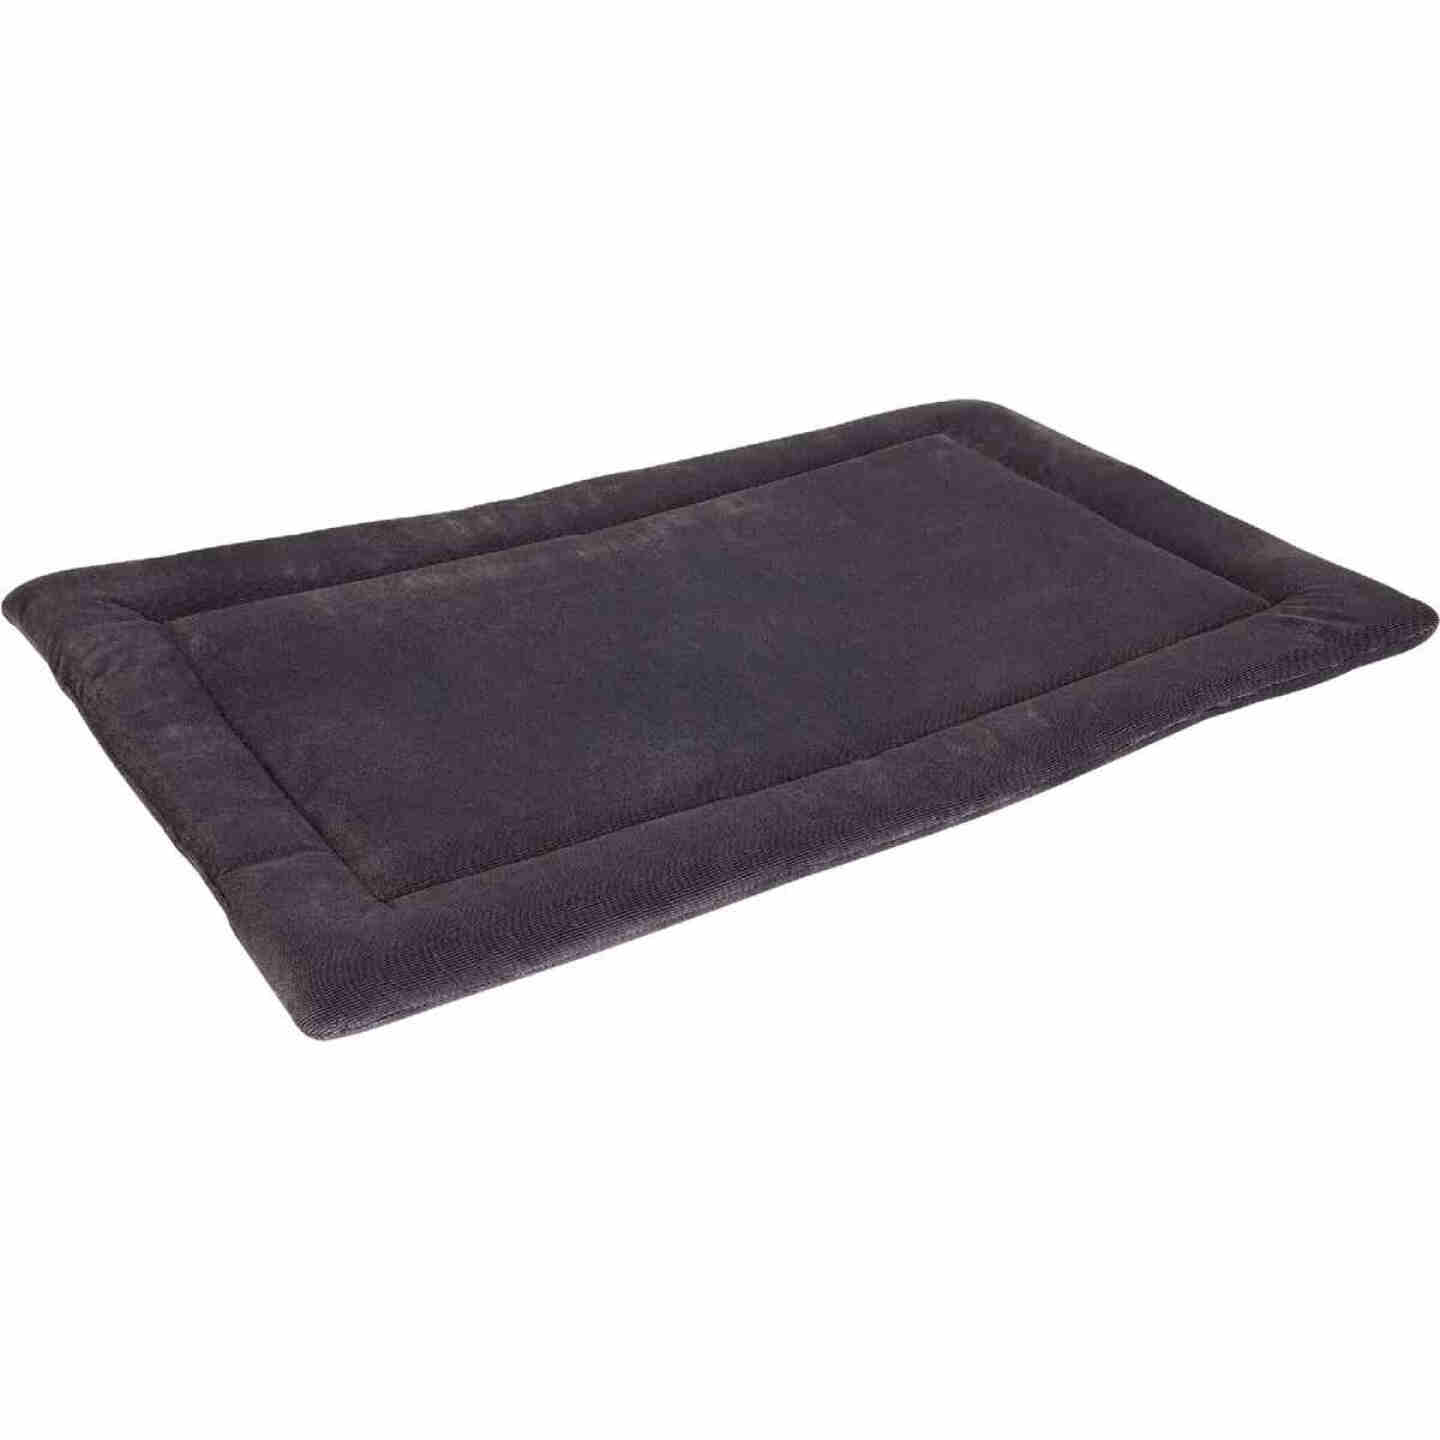 Petmate Aspen Pet 32 In. W. x 21 In. L. Woven Plush/Polyester Batting Kennel Mat Dog Bed Image 1